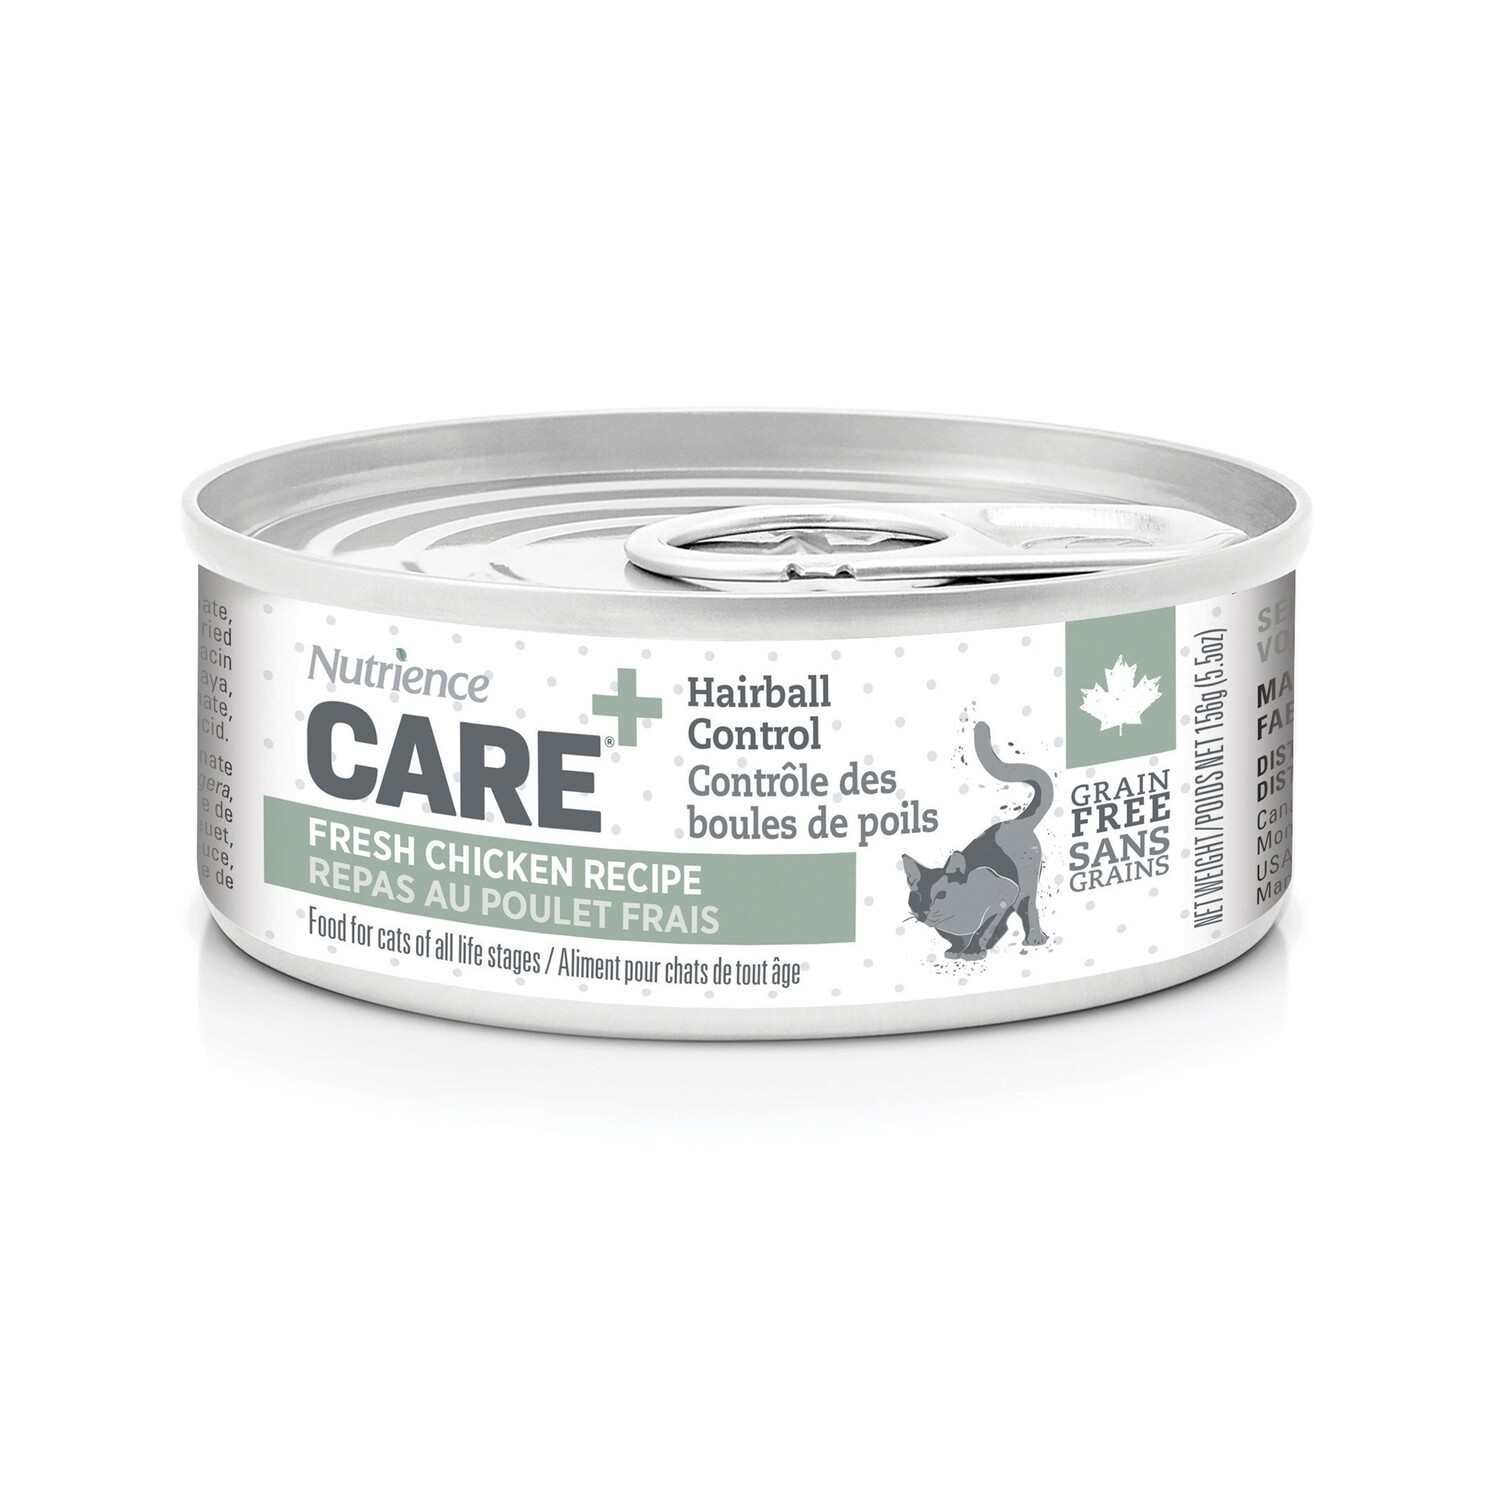 NUTRIENCE CARE HAIRBALL CONTROL PATE F/CATS 156G